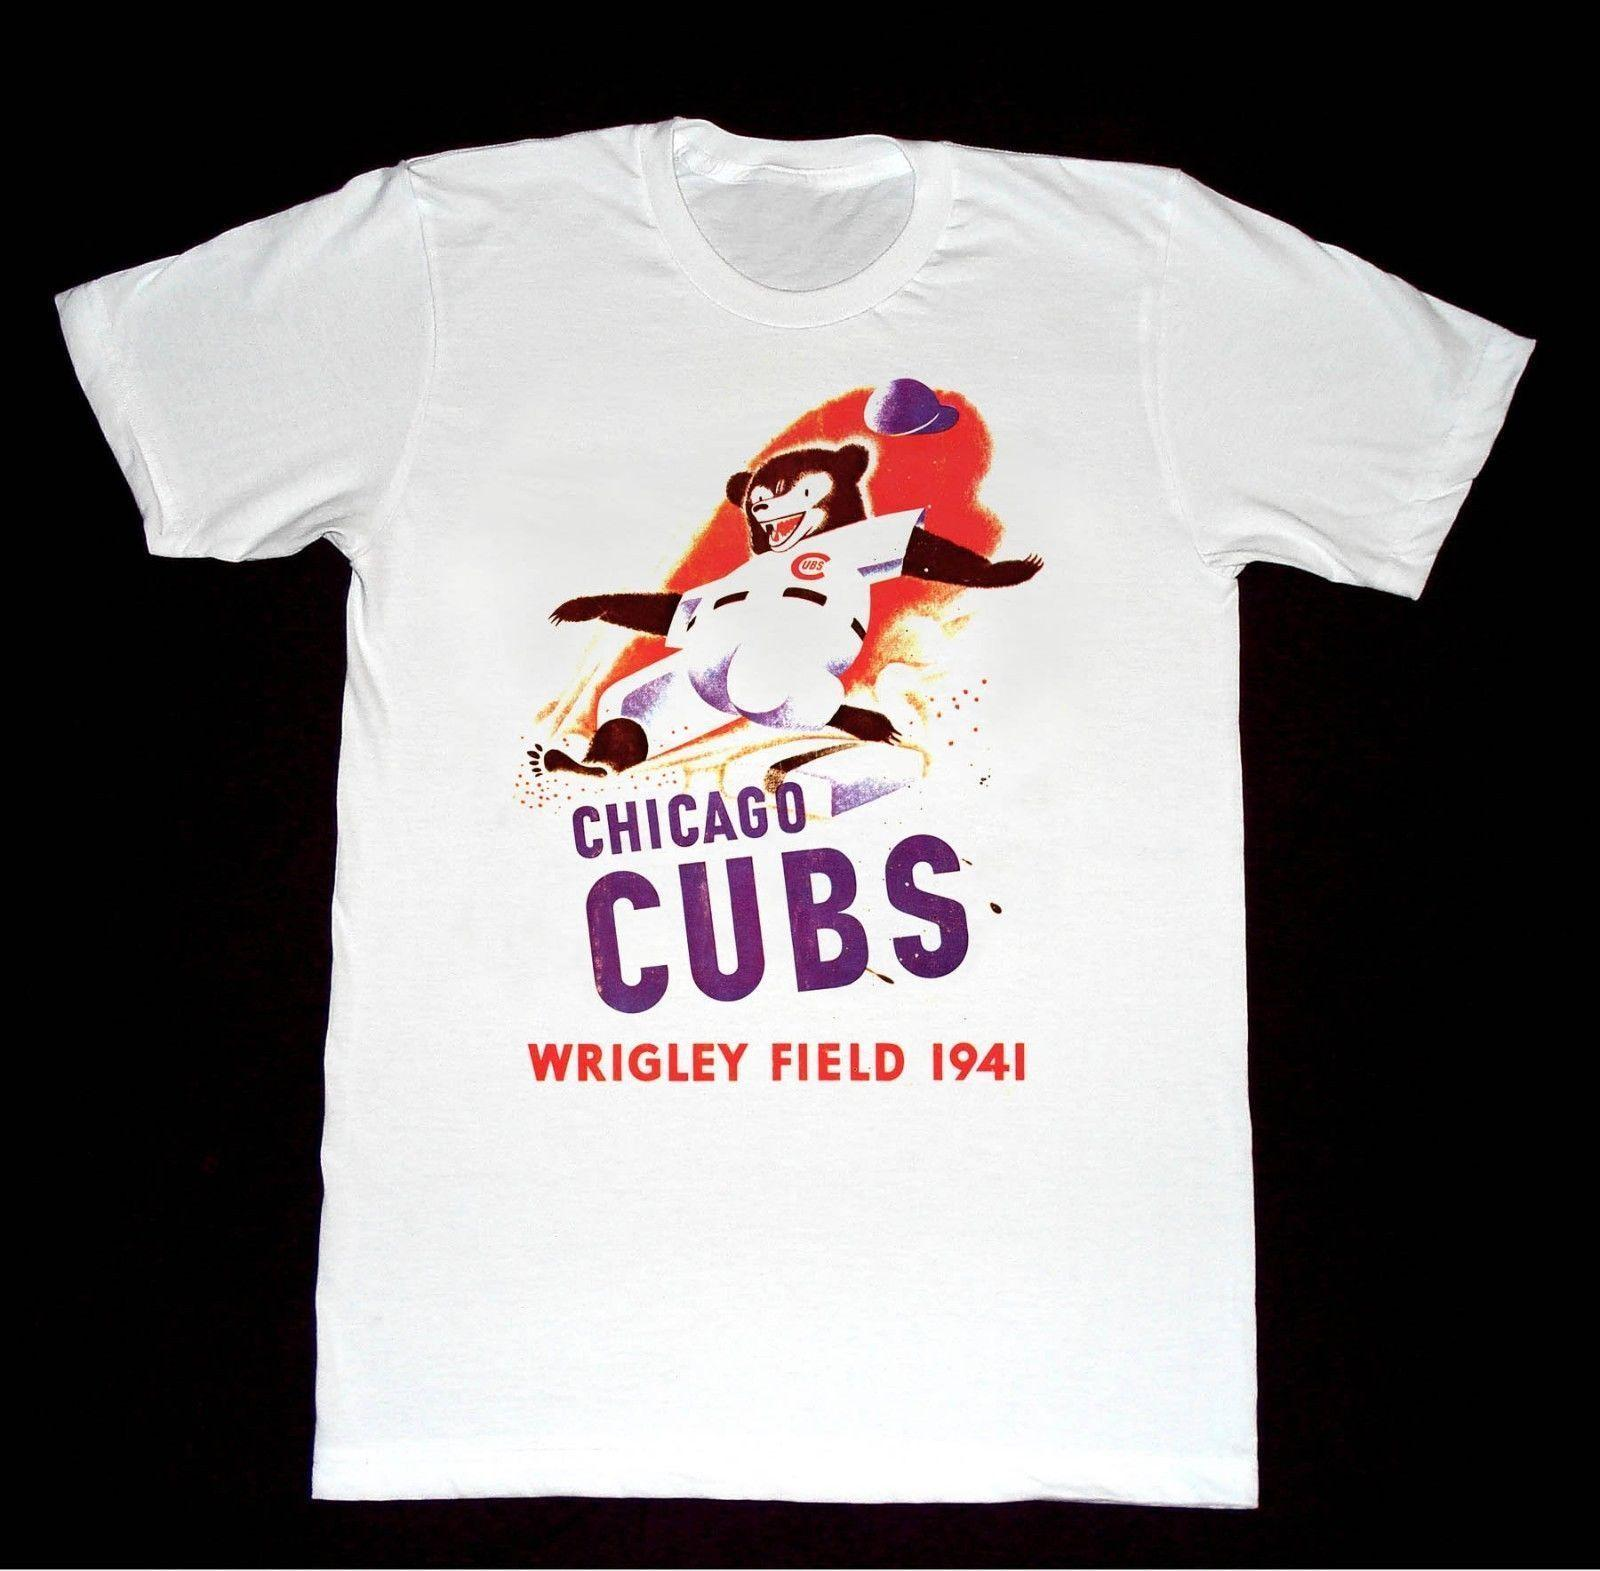 58672b03b Chicago Cubs 1941 Wrigley Field Tshirt Rude Tshirts Offensive Tee Shirts  From Valuebuy, $11.01| DHgate.Com